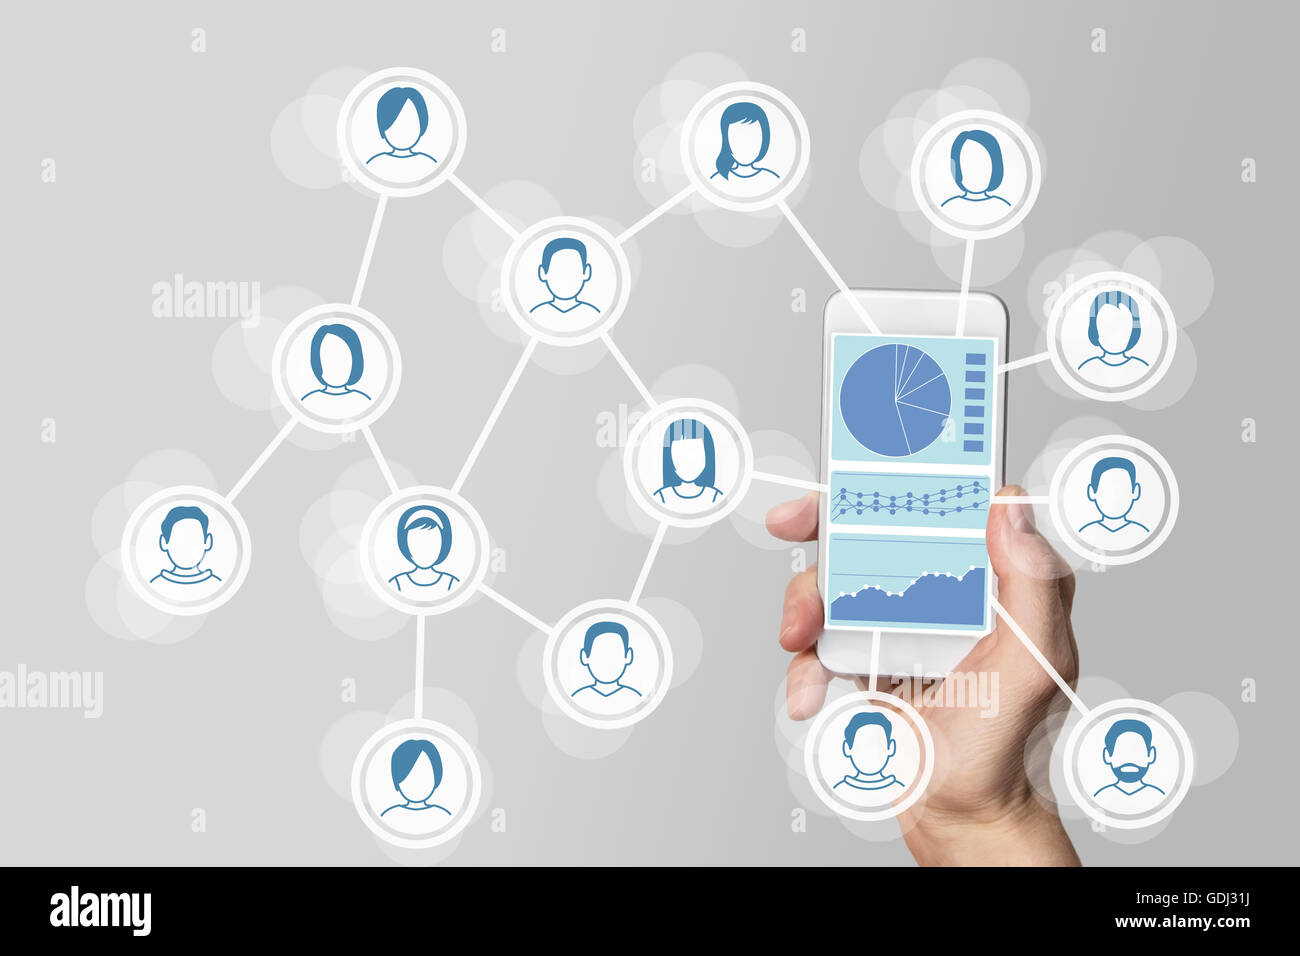 Big data dashboard to analyze social media and network data - Stock Image